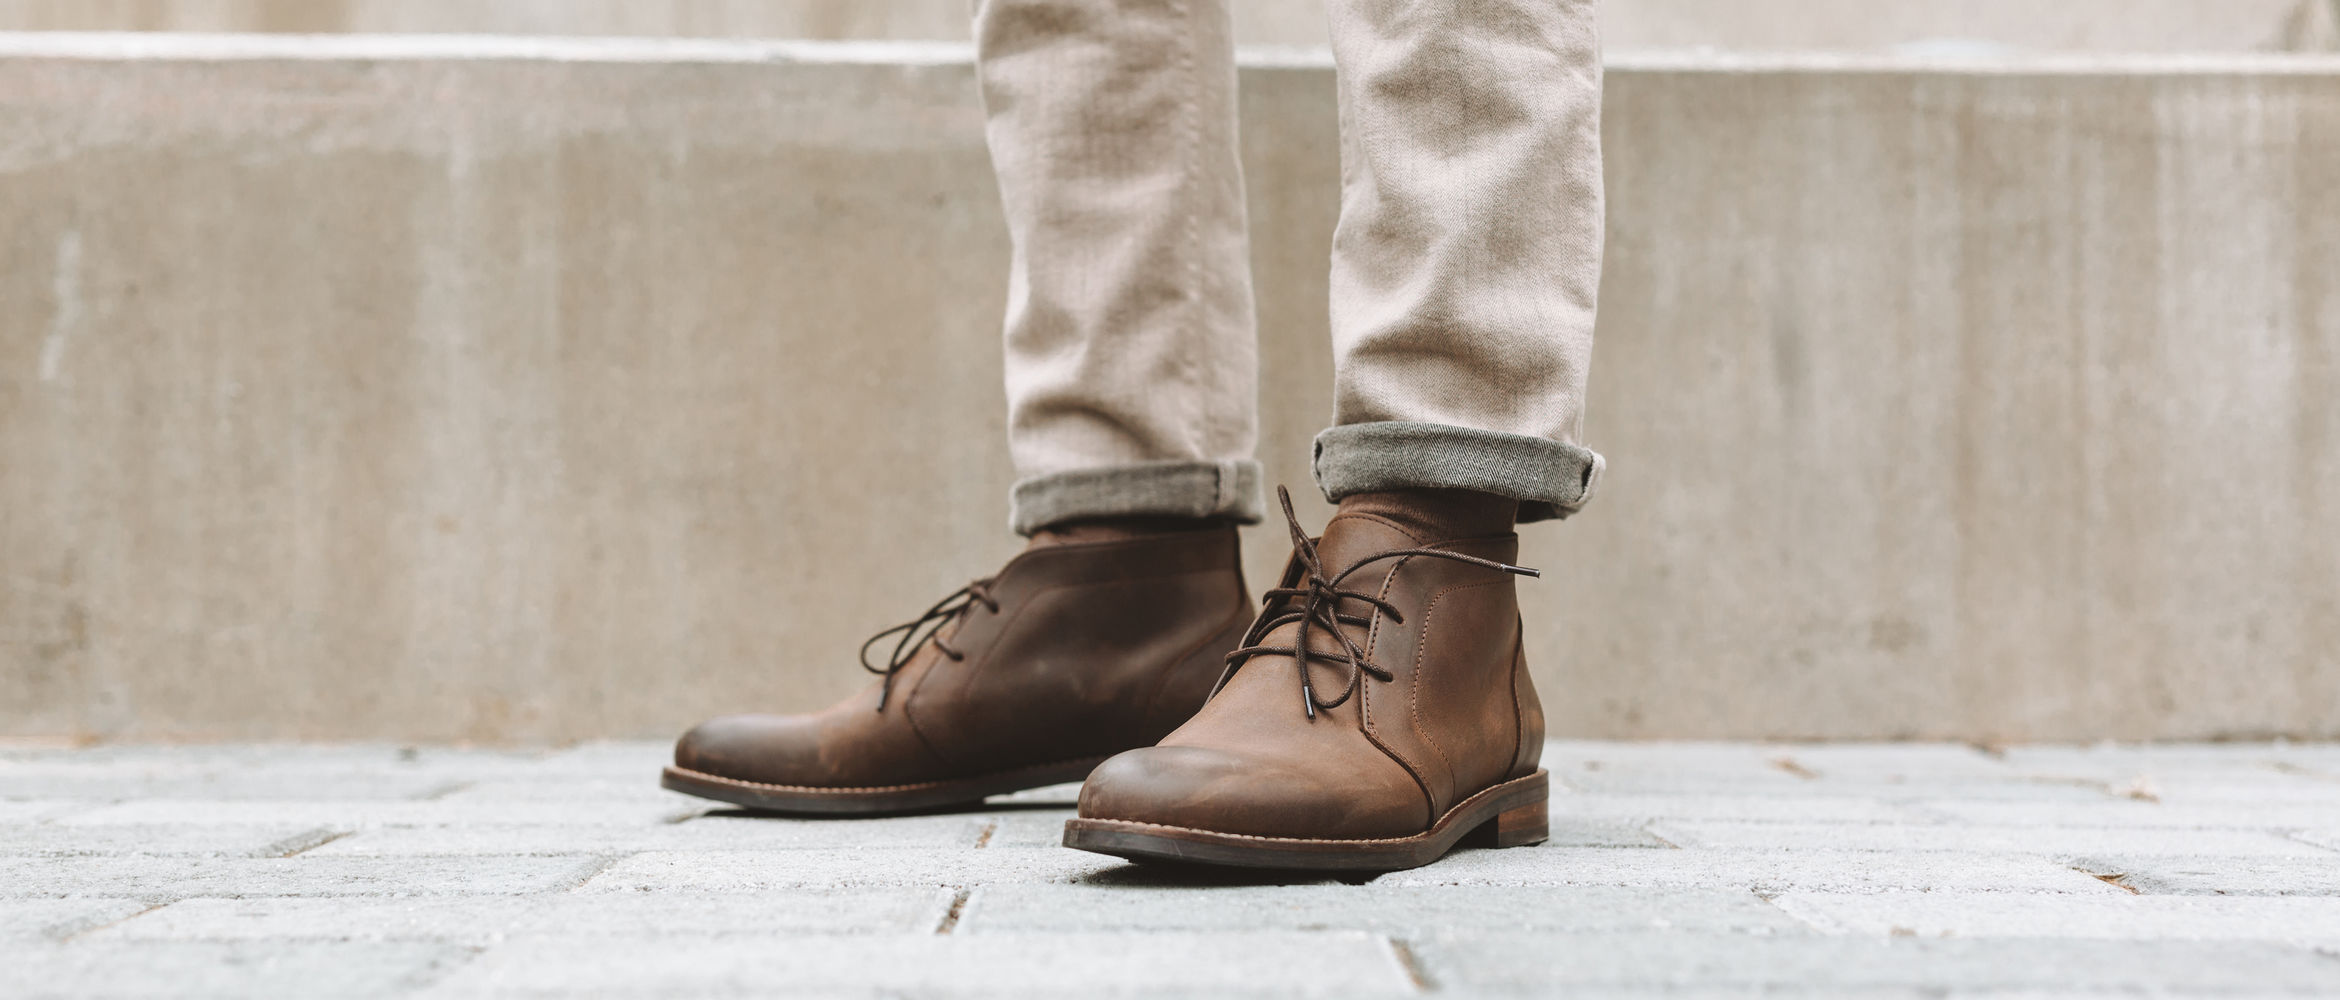 10 Best Mens Desert Boots for 2019 New Chukka Boots and